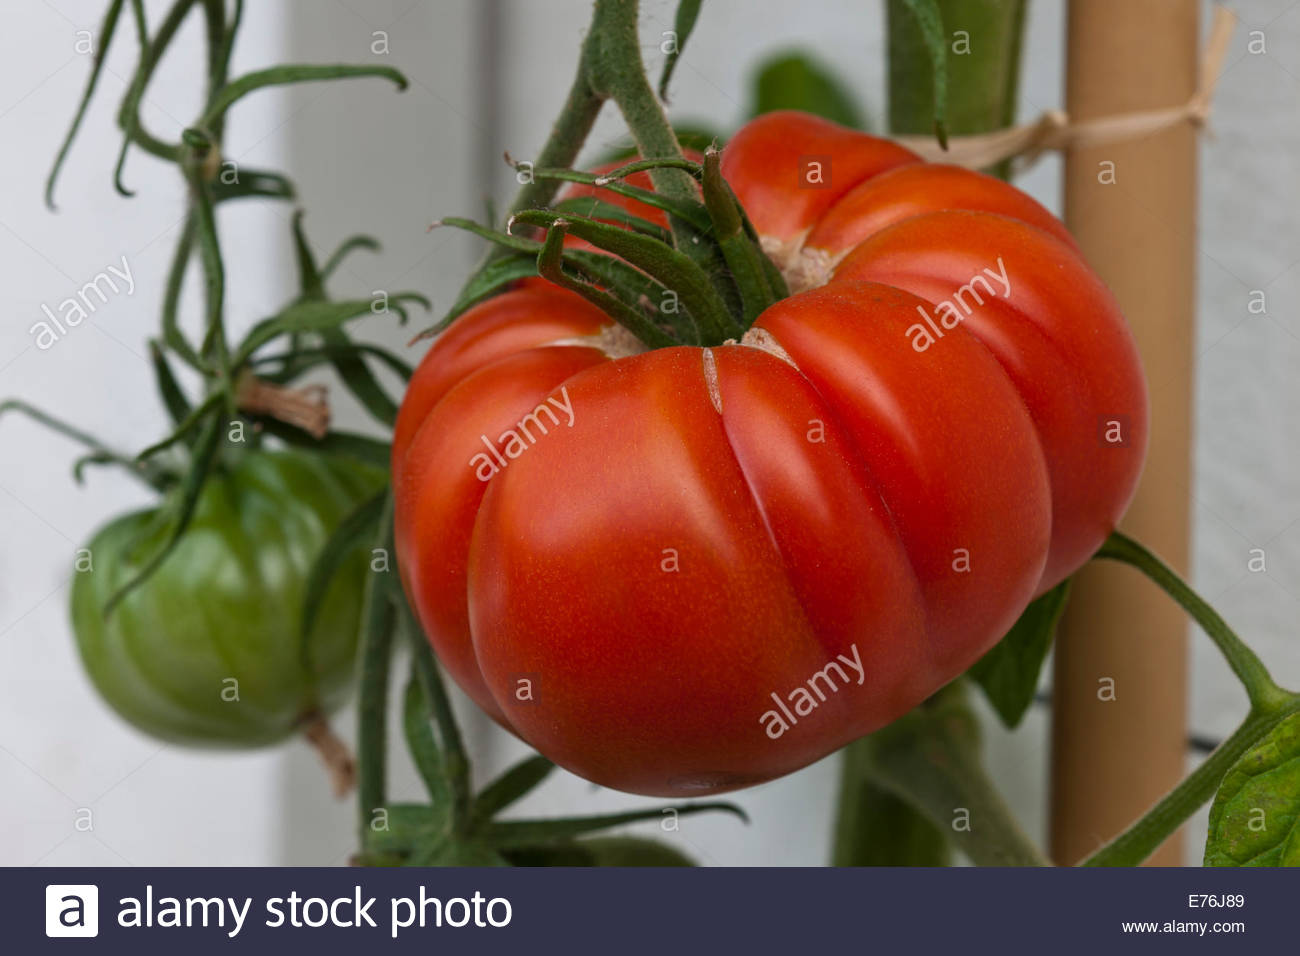 Kitchen Garden Foods Tomato Belriccio Summer Vine Vegetable Orange Red Kitchen Garden